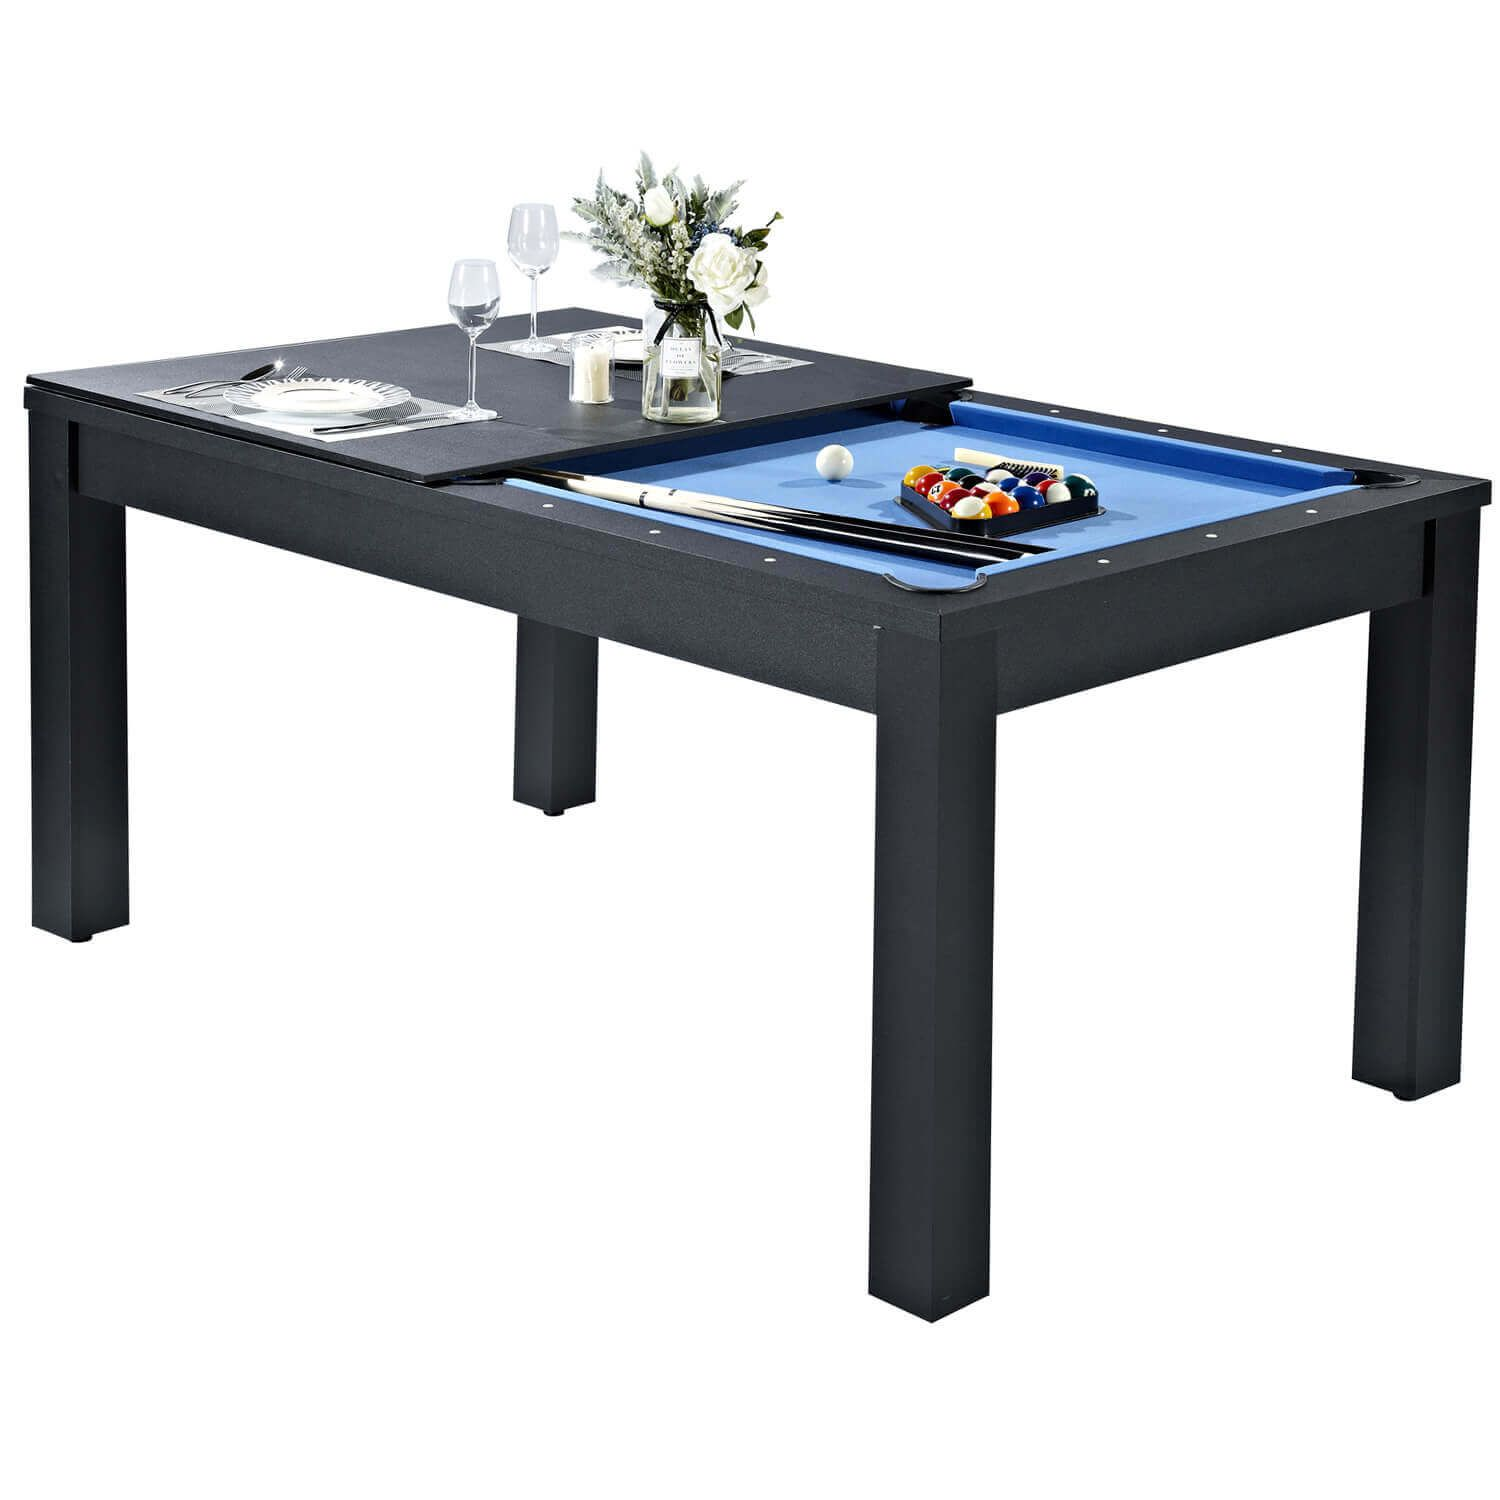 Pureline 6ft Pool Dining Table With Table Tennis Top Pool Table Dining Table 6ft Pool Table Diner Table